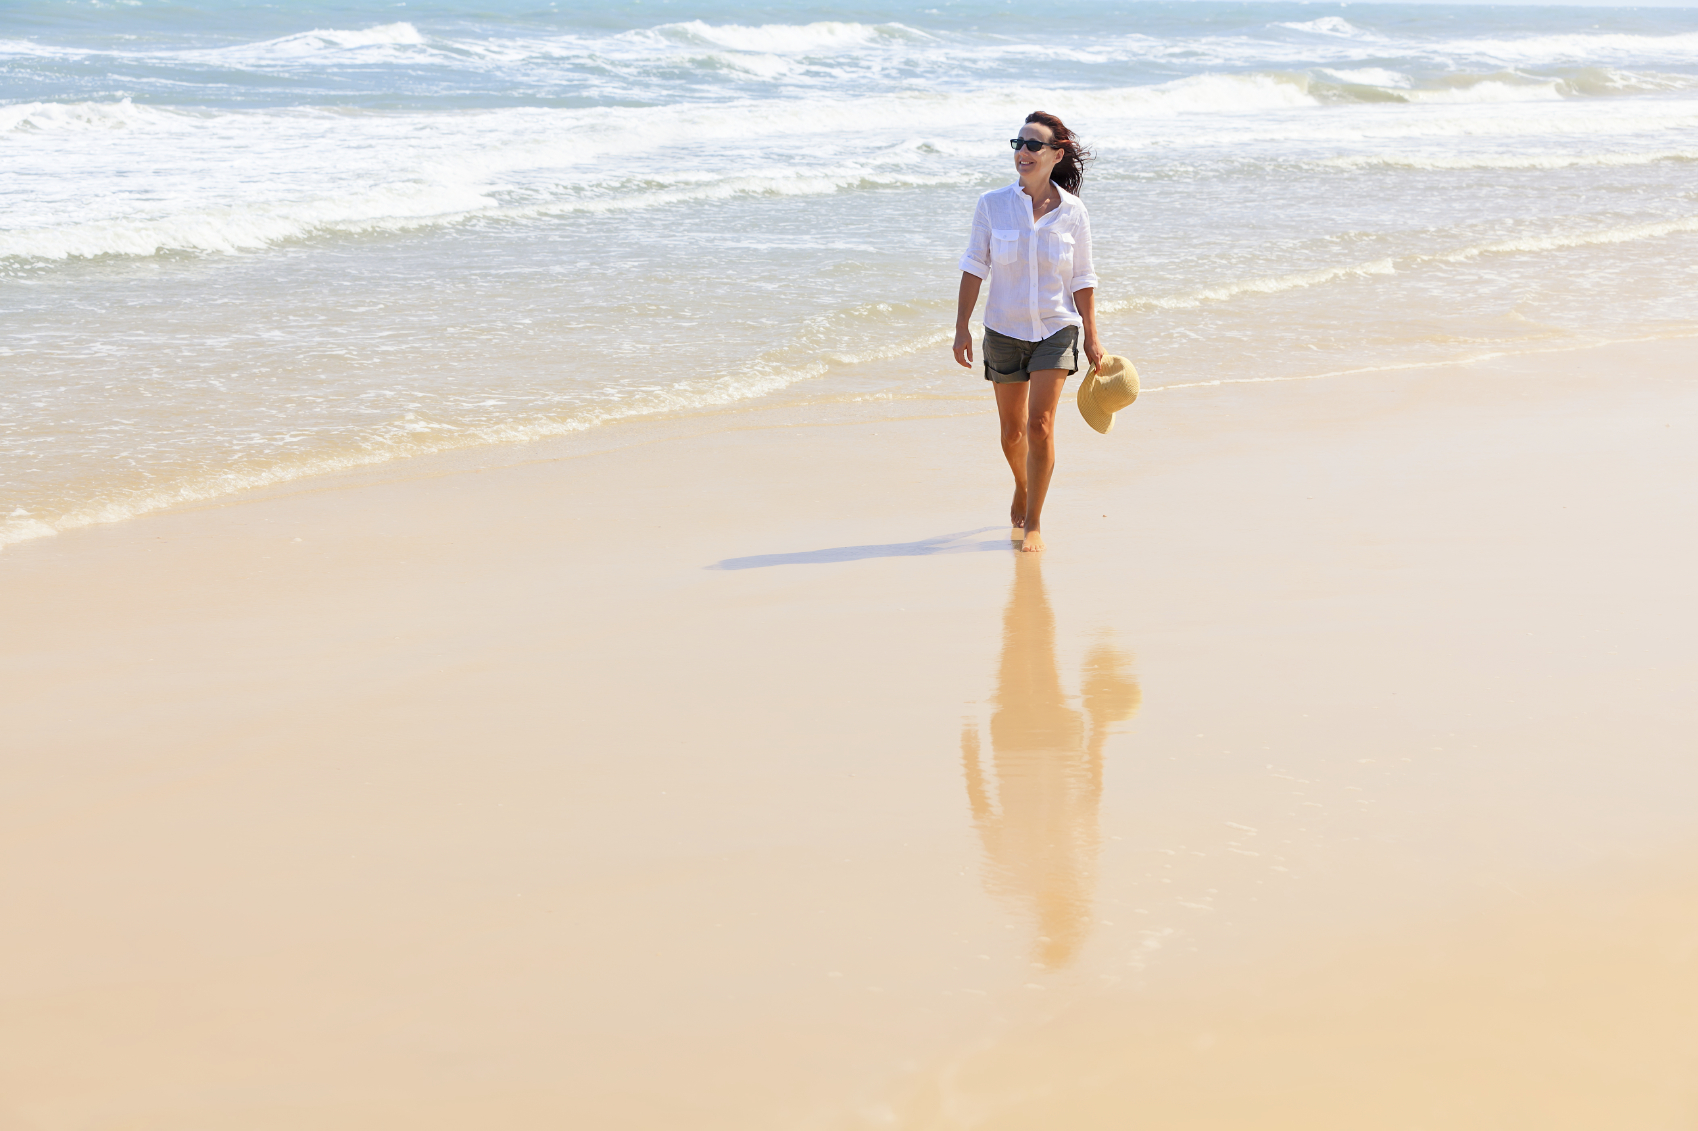 You'll never reach your best health without the help of vitamin D3... And new research reveals it may help significantly lower your pancreatic cancer risk.